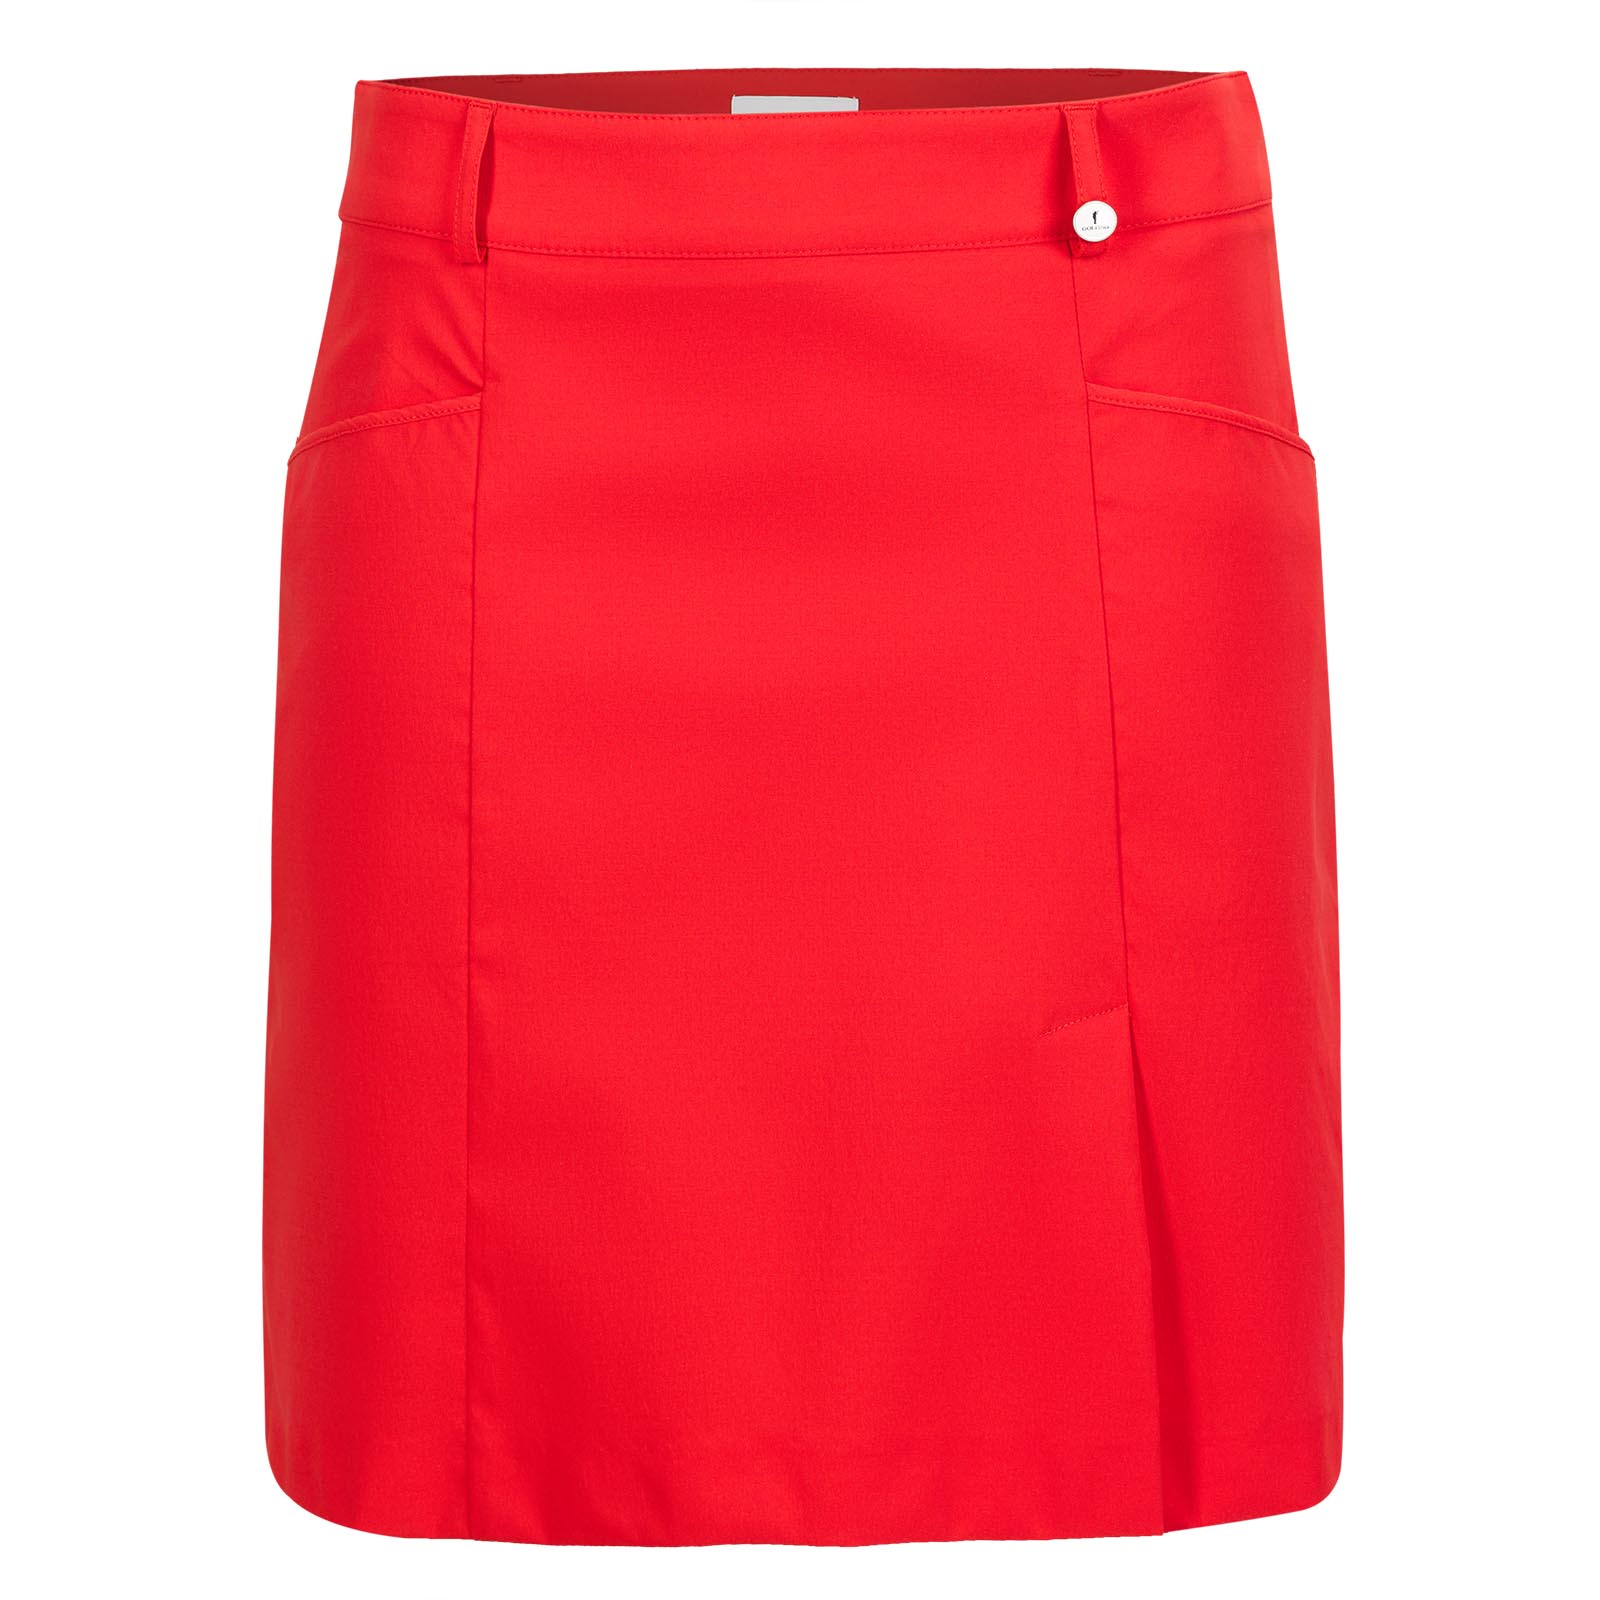 Ladies' skort made from water-repellent stretch material with sun protection function